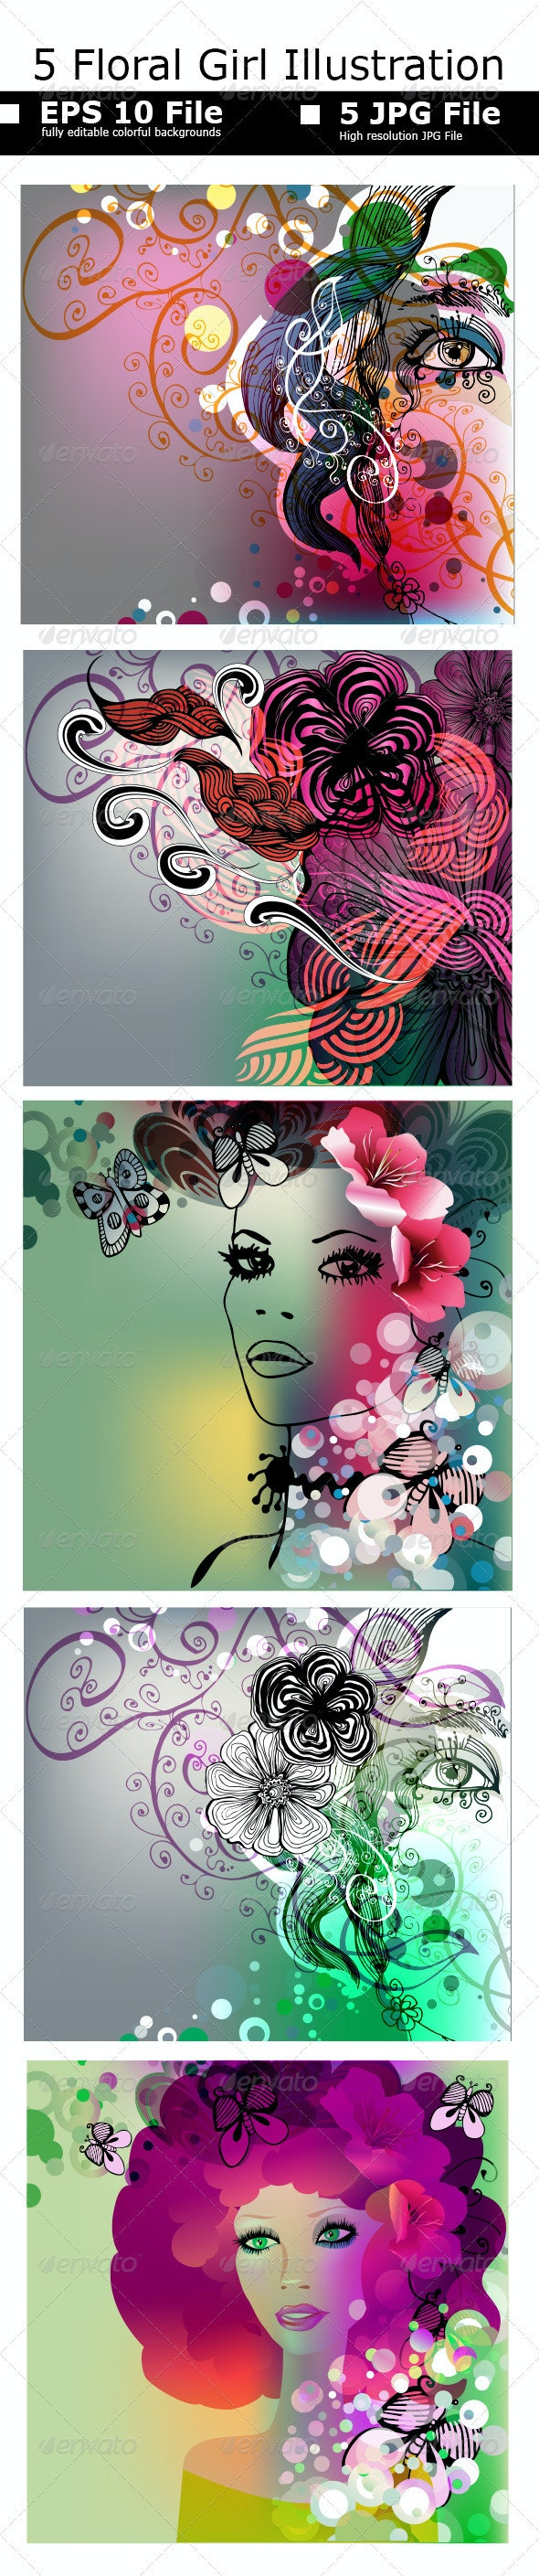 Floral Girl Illustrations Set - People Characters